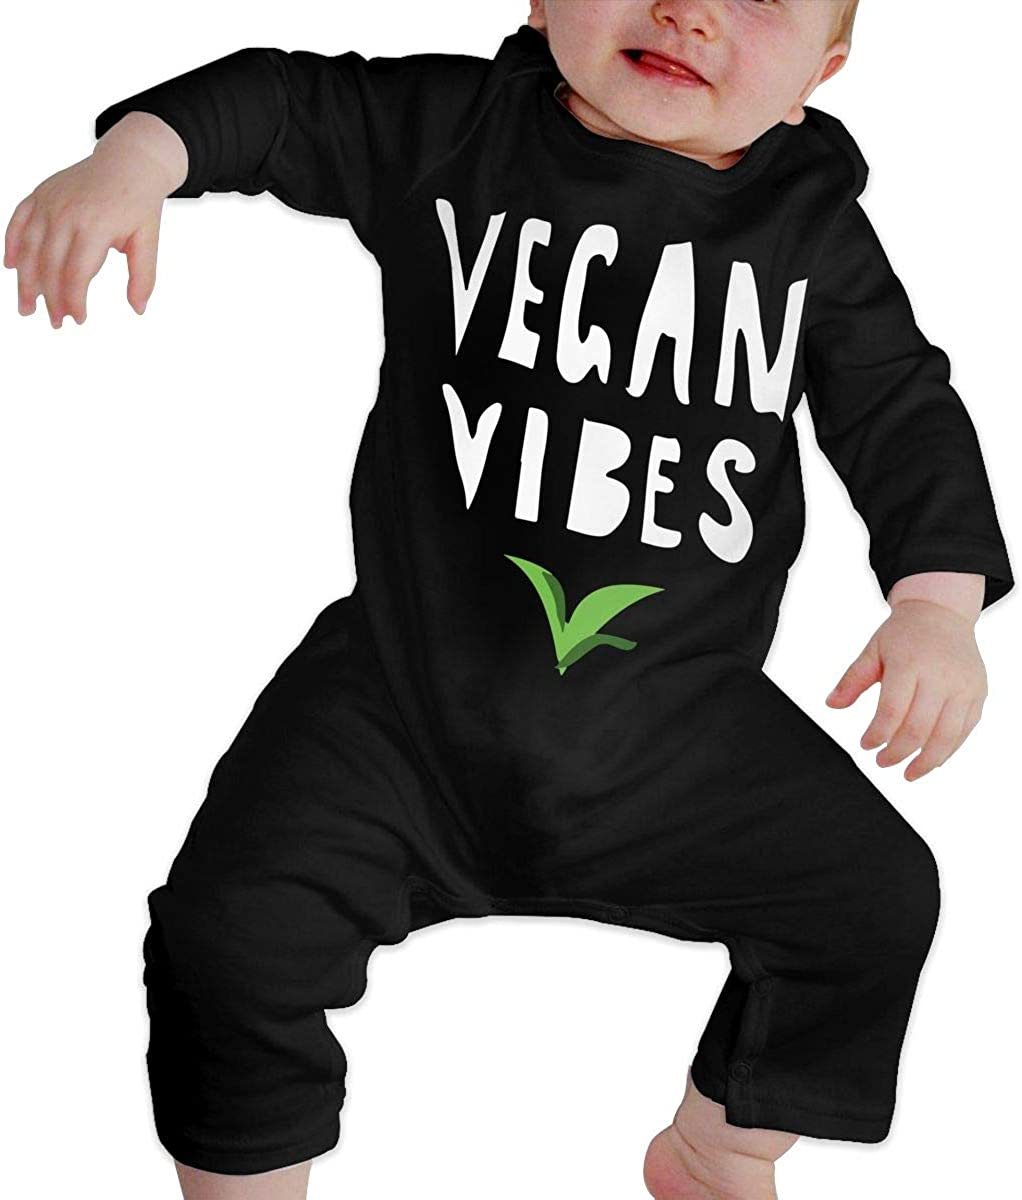 Baby Girls Romper Jumpsuit Vegan Vibes Organic One-Piece Bodysuits Coverall Outfits